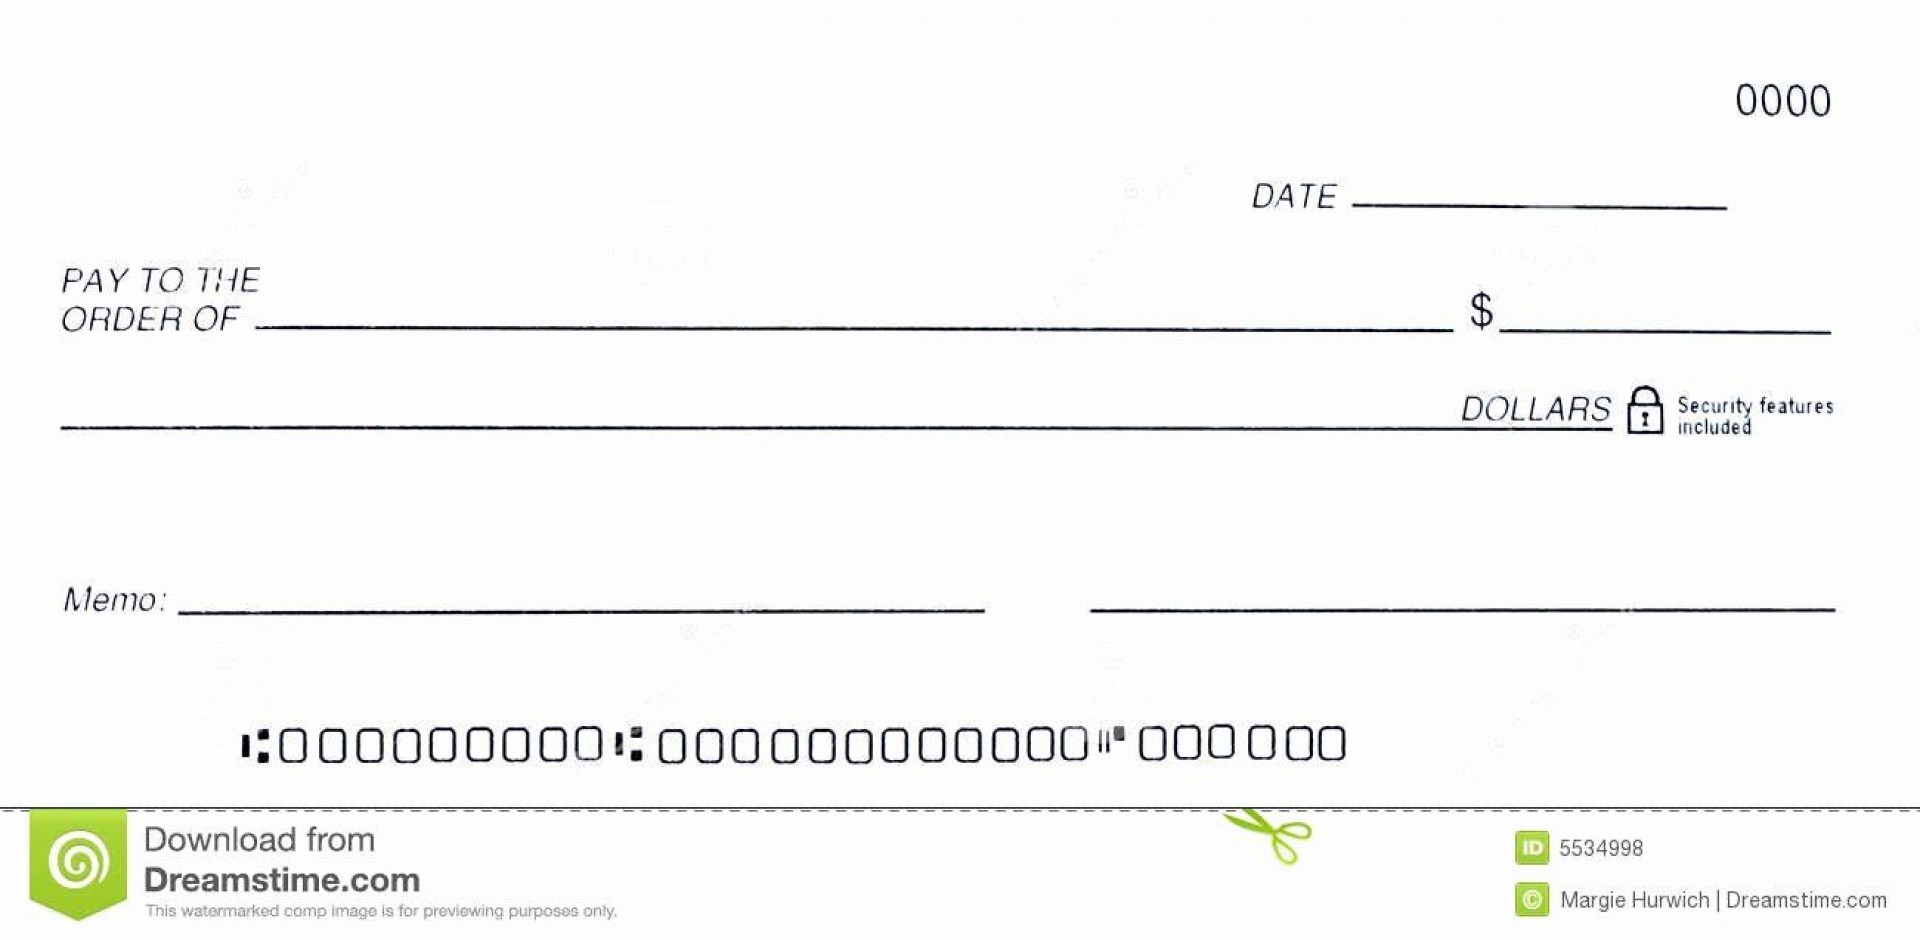 008 Striking Busines Check Template Word Image  Free Blank Document1920